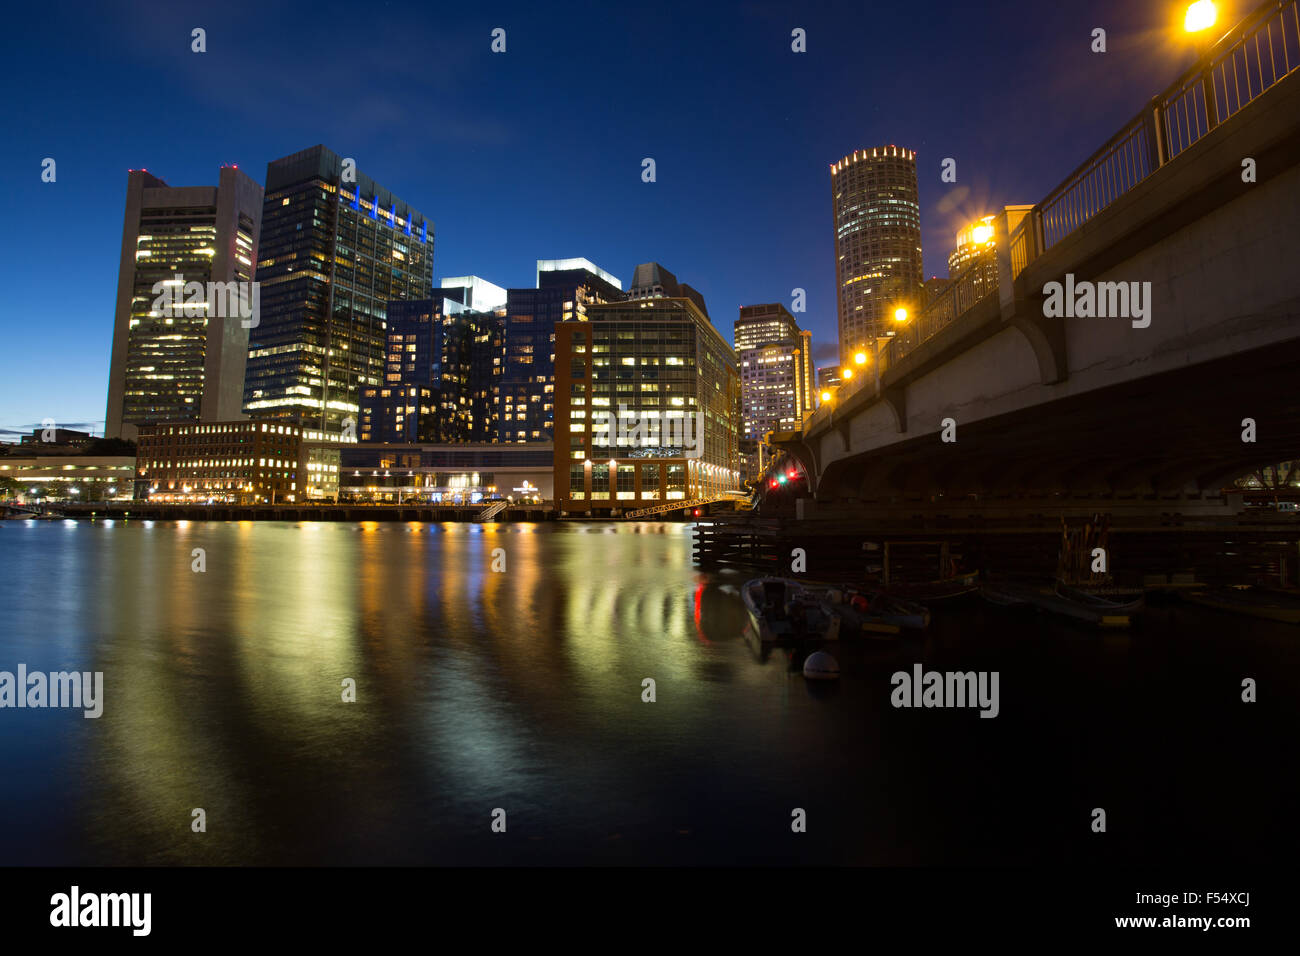 boston evening nightscape - Stock Image